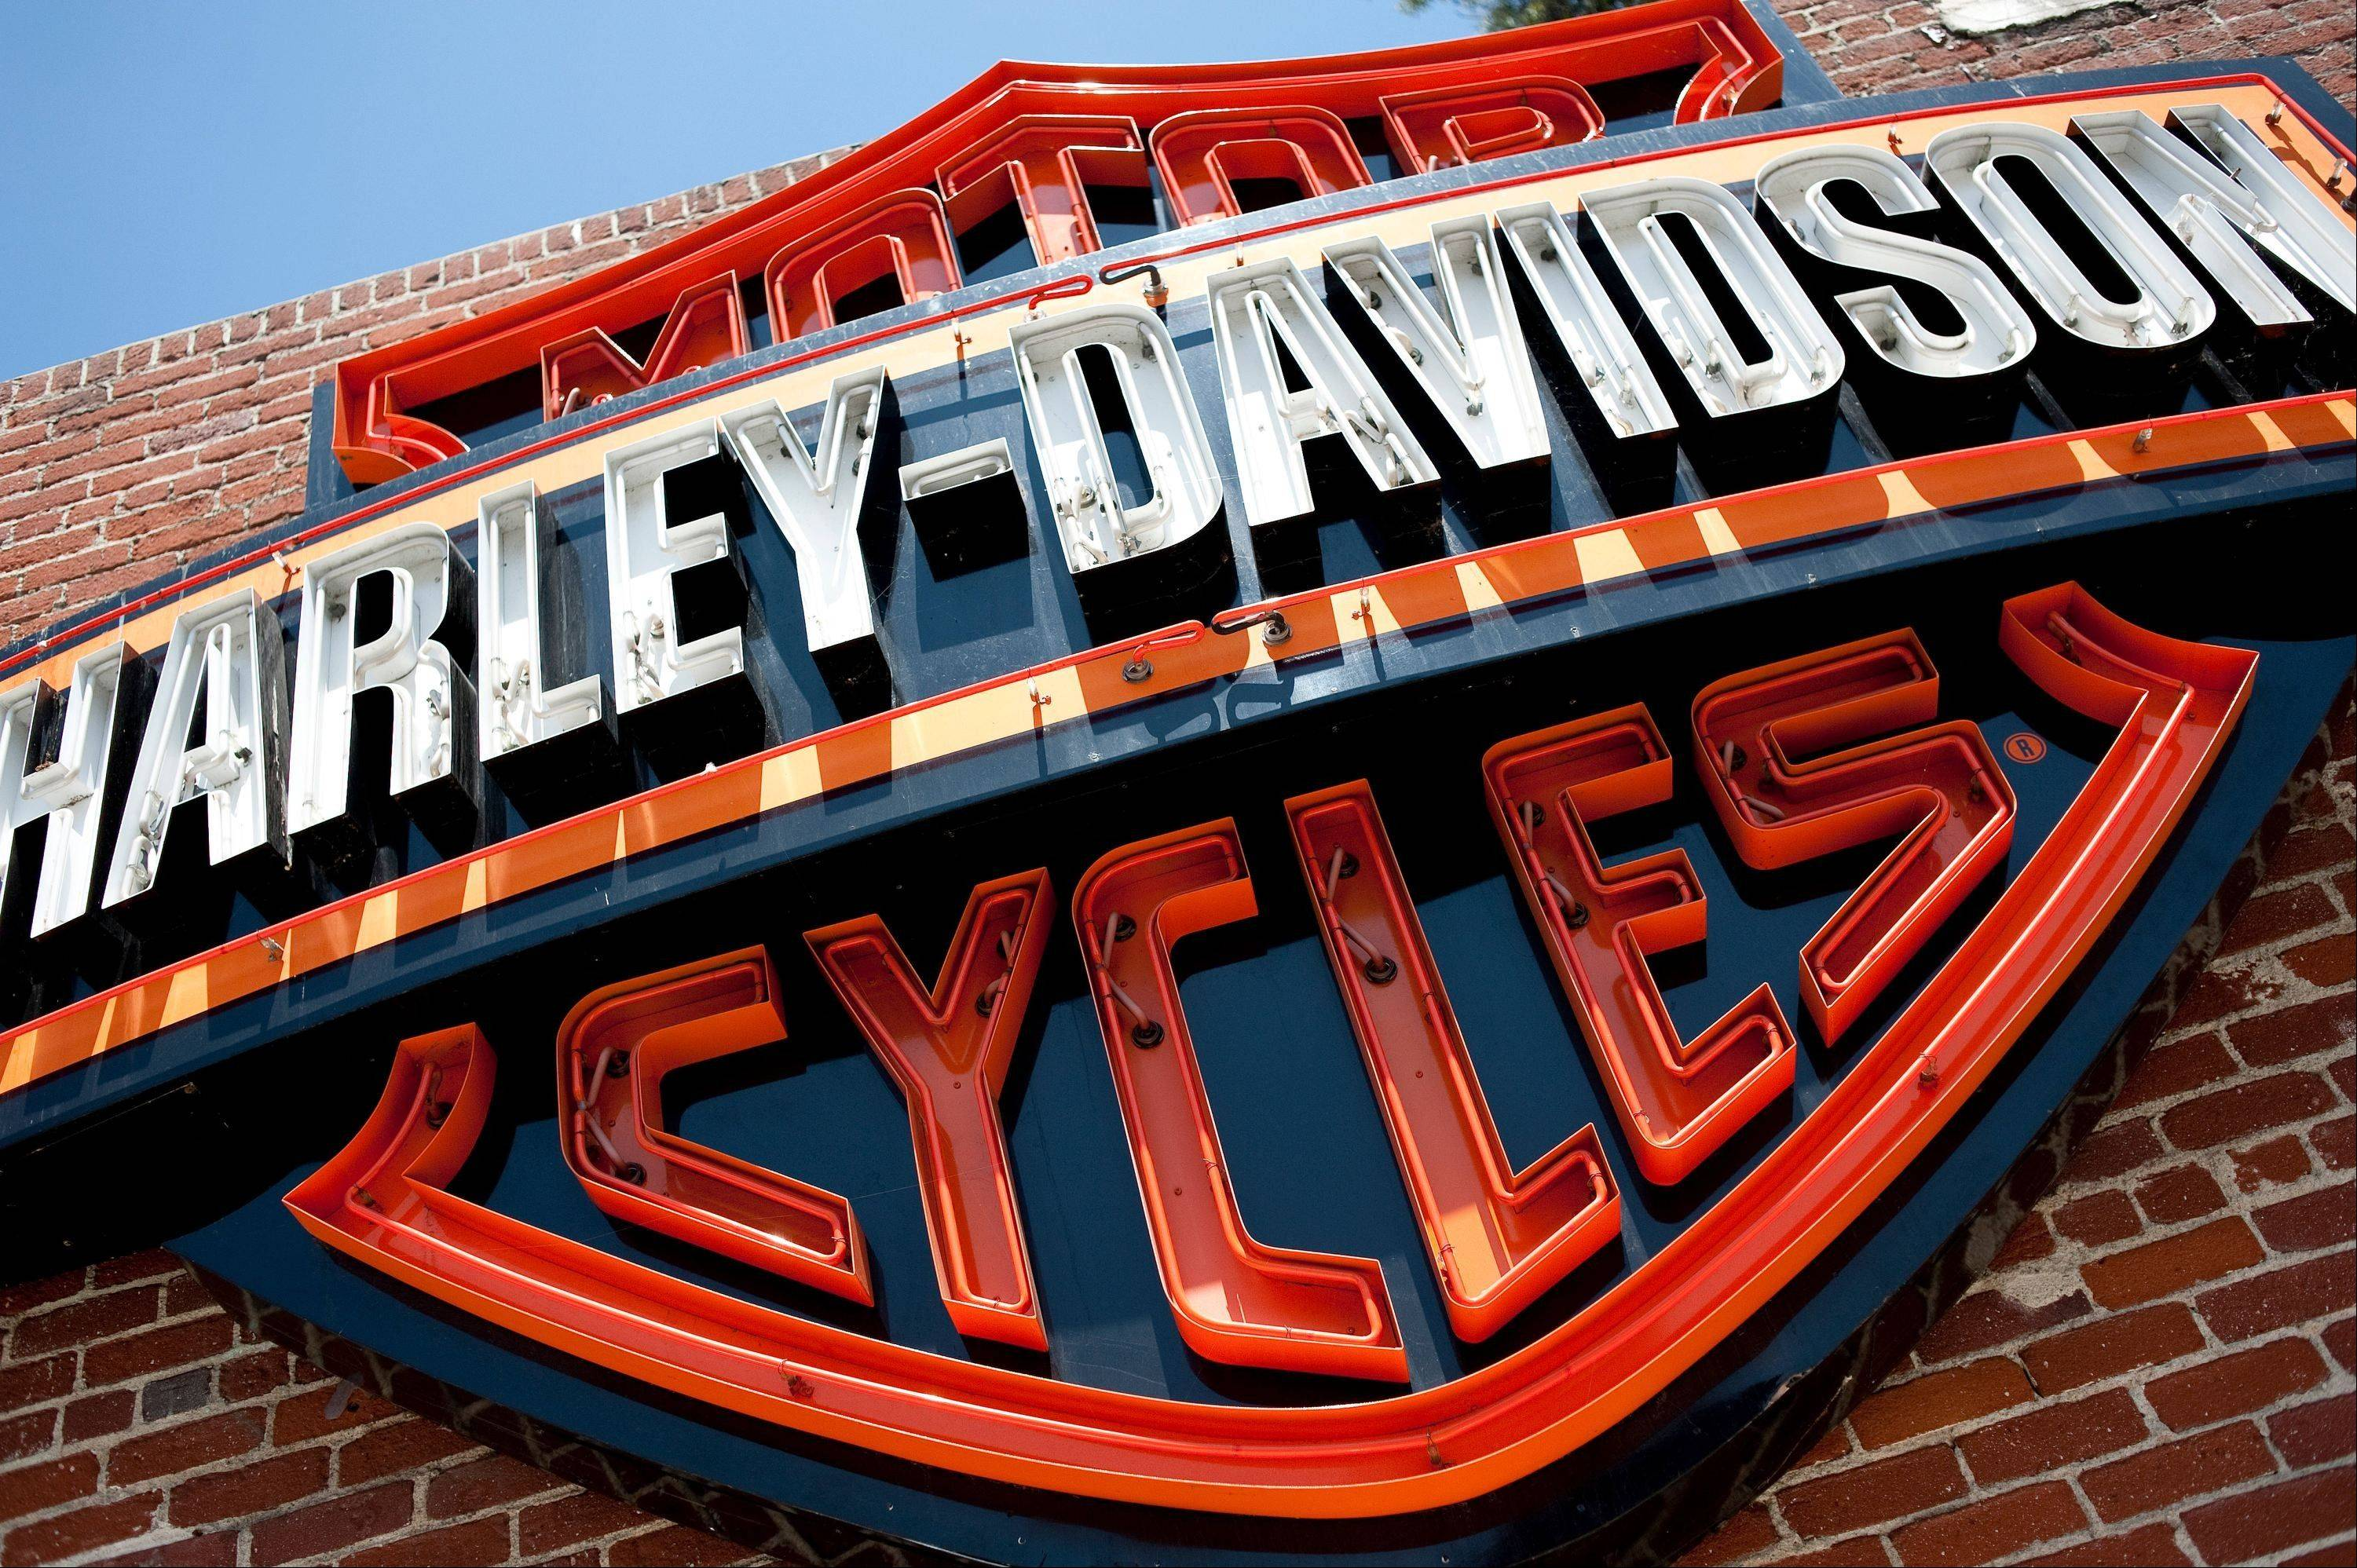 Harley-Davidson's fourth-quarter earnings rose 6.8 percent as motorcycle sales continued to rise worldwide.